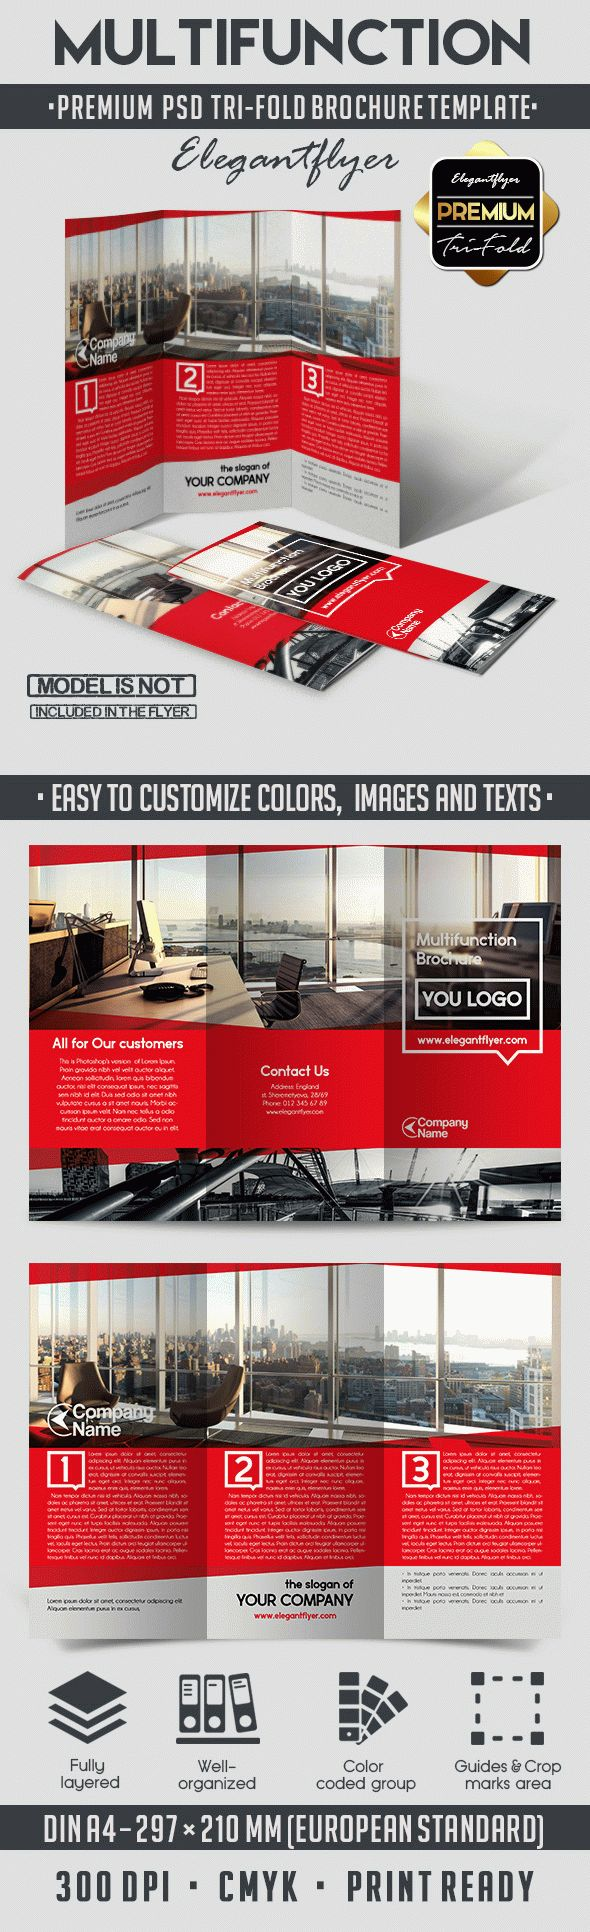 Multifunction – Tri-Fold Brochure PSD Template